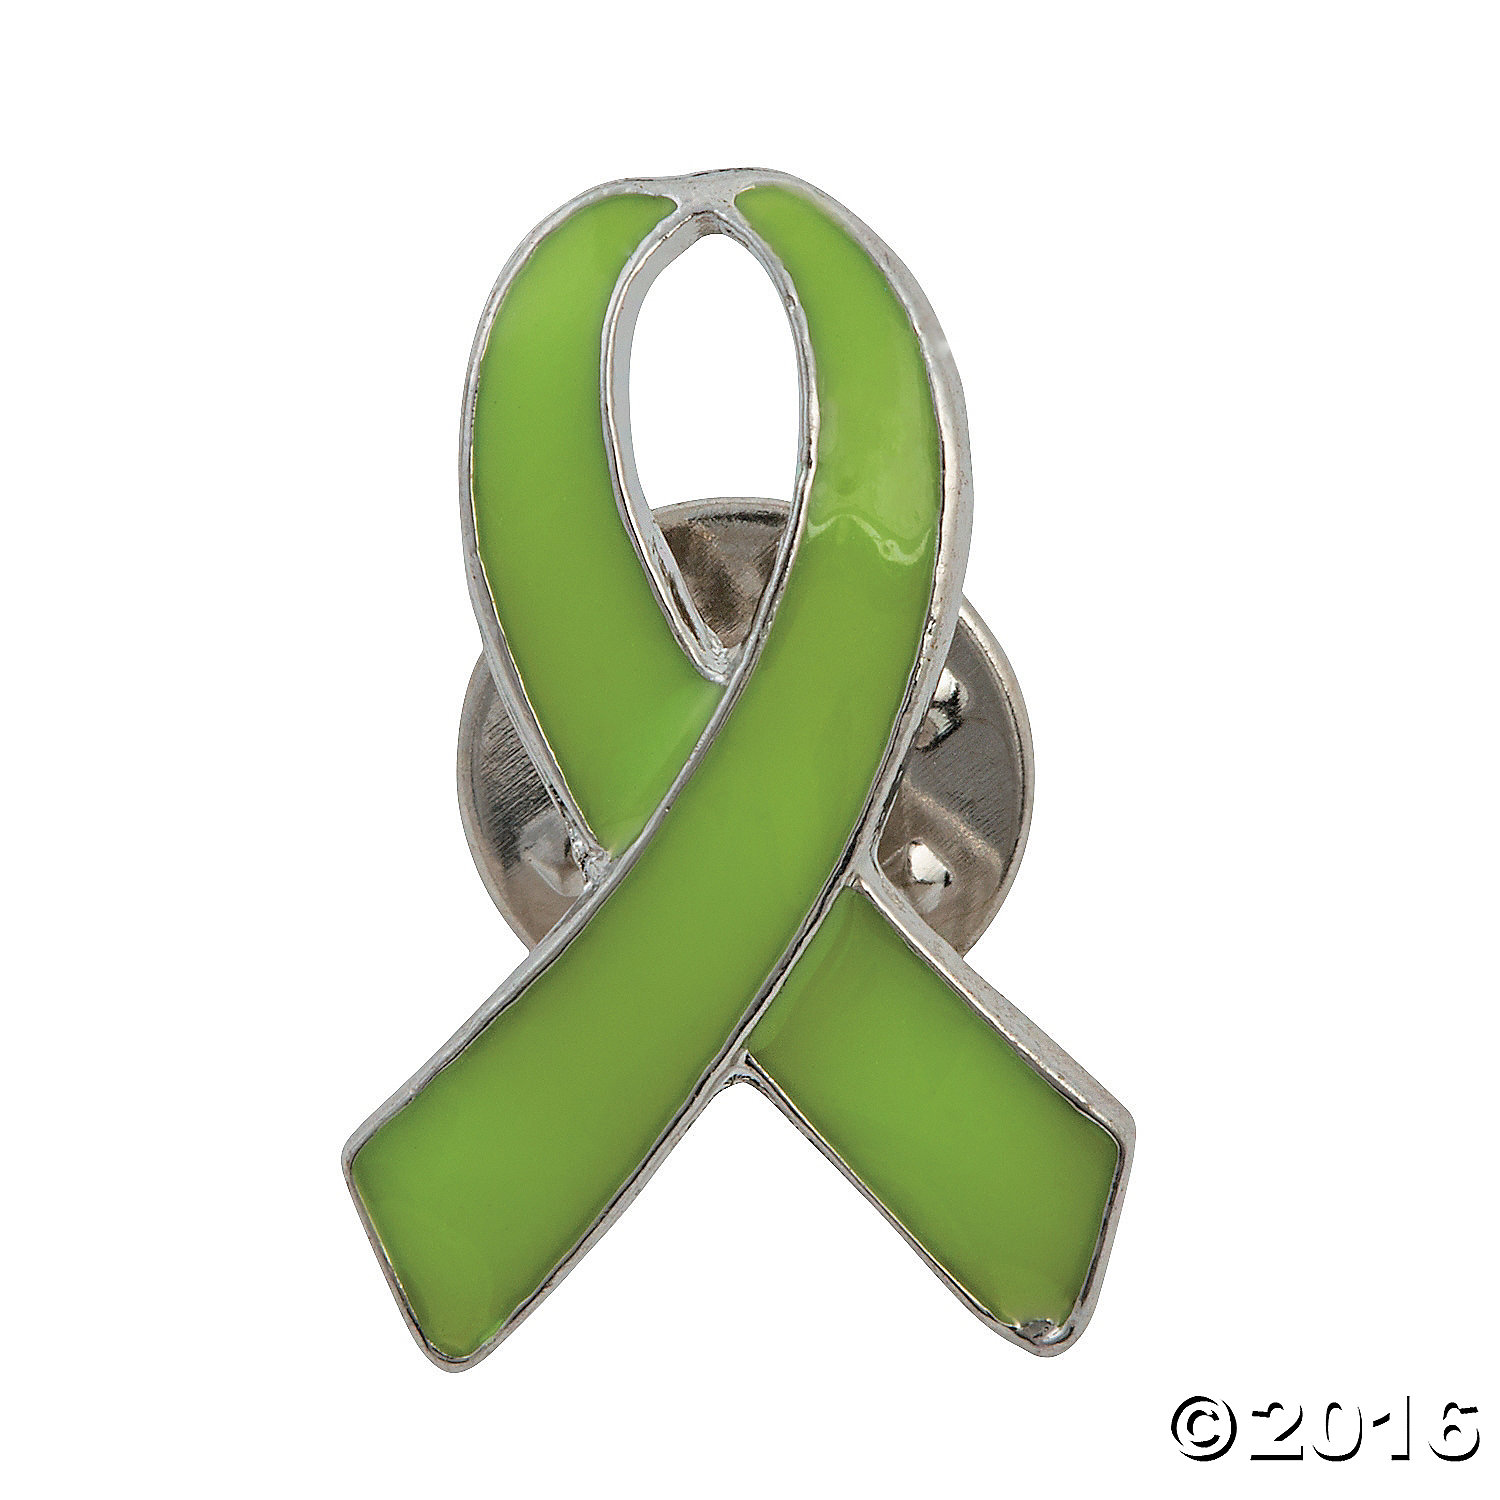 awareness and self day vector of unique harm mental color health bracelet ribbon